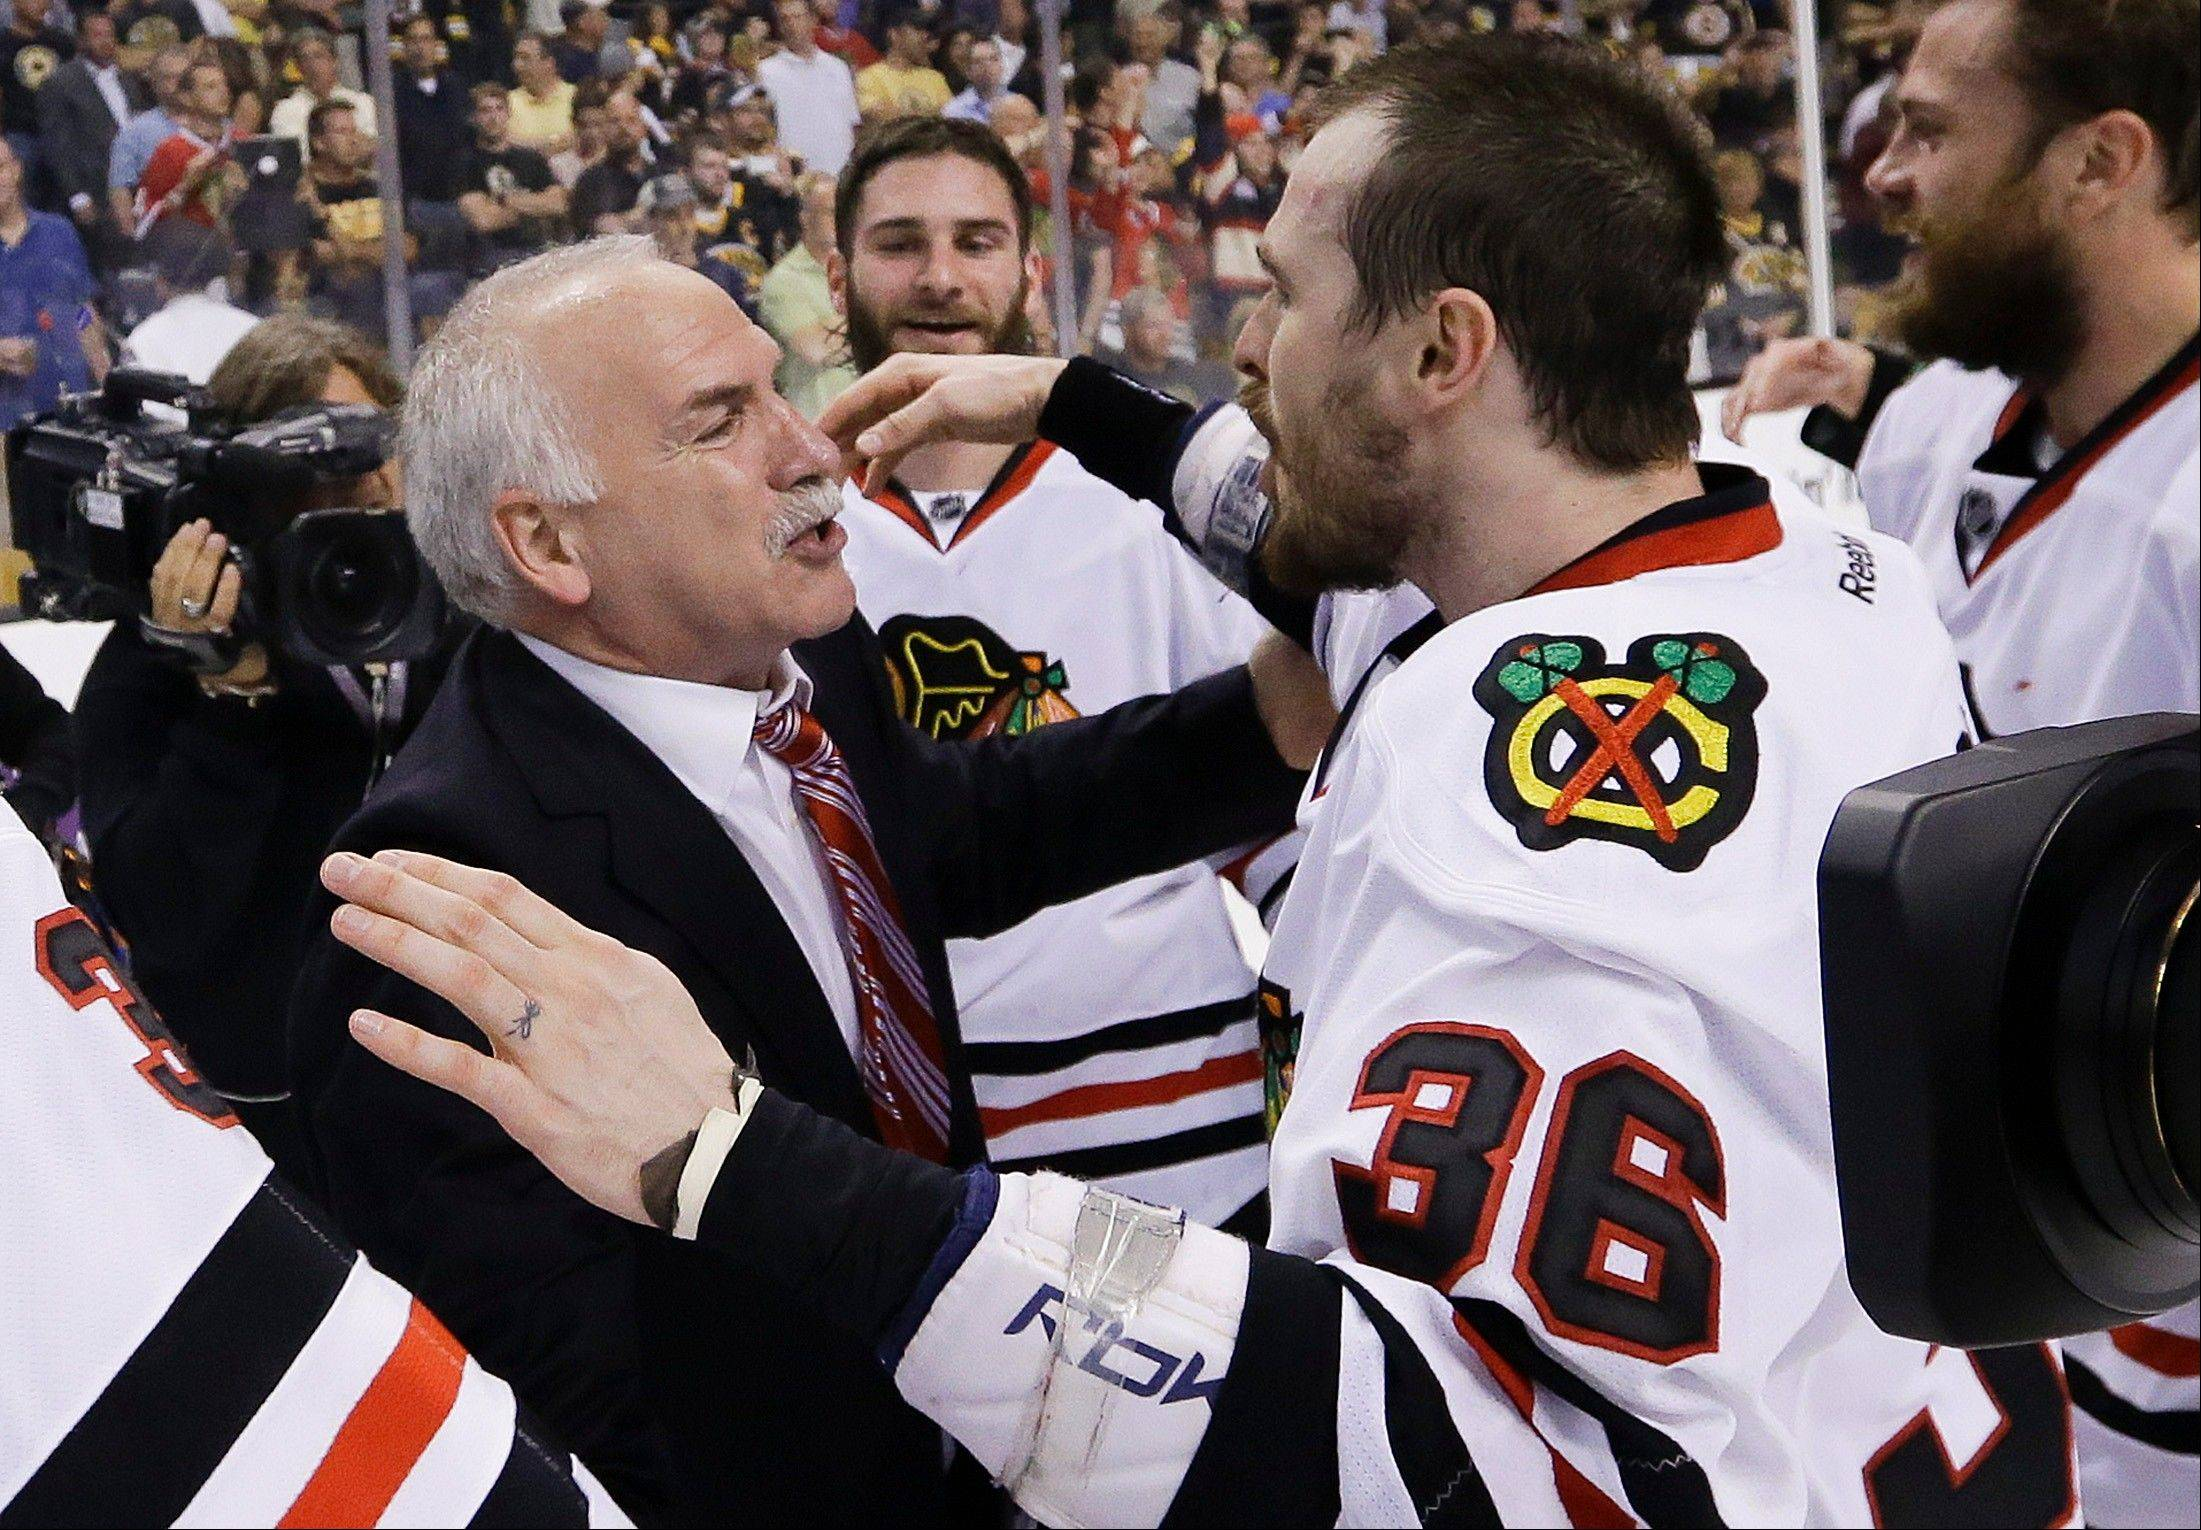 Chicago Blackhawks head coach Joel Quenneville and Chicago Blackhawks center Dave Bolland (36) celebrate the Stanley Cup championship after the Blackhawks beat the Boston Bruins 3-2in Game 6 of the NHL hockey Stanley Cup Finals Monday, June 24, 2013, in Boston.